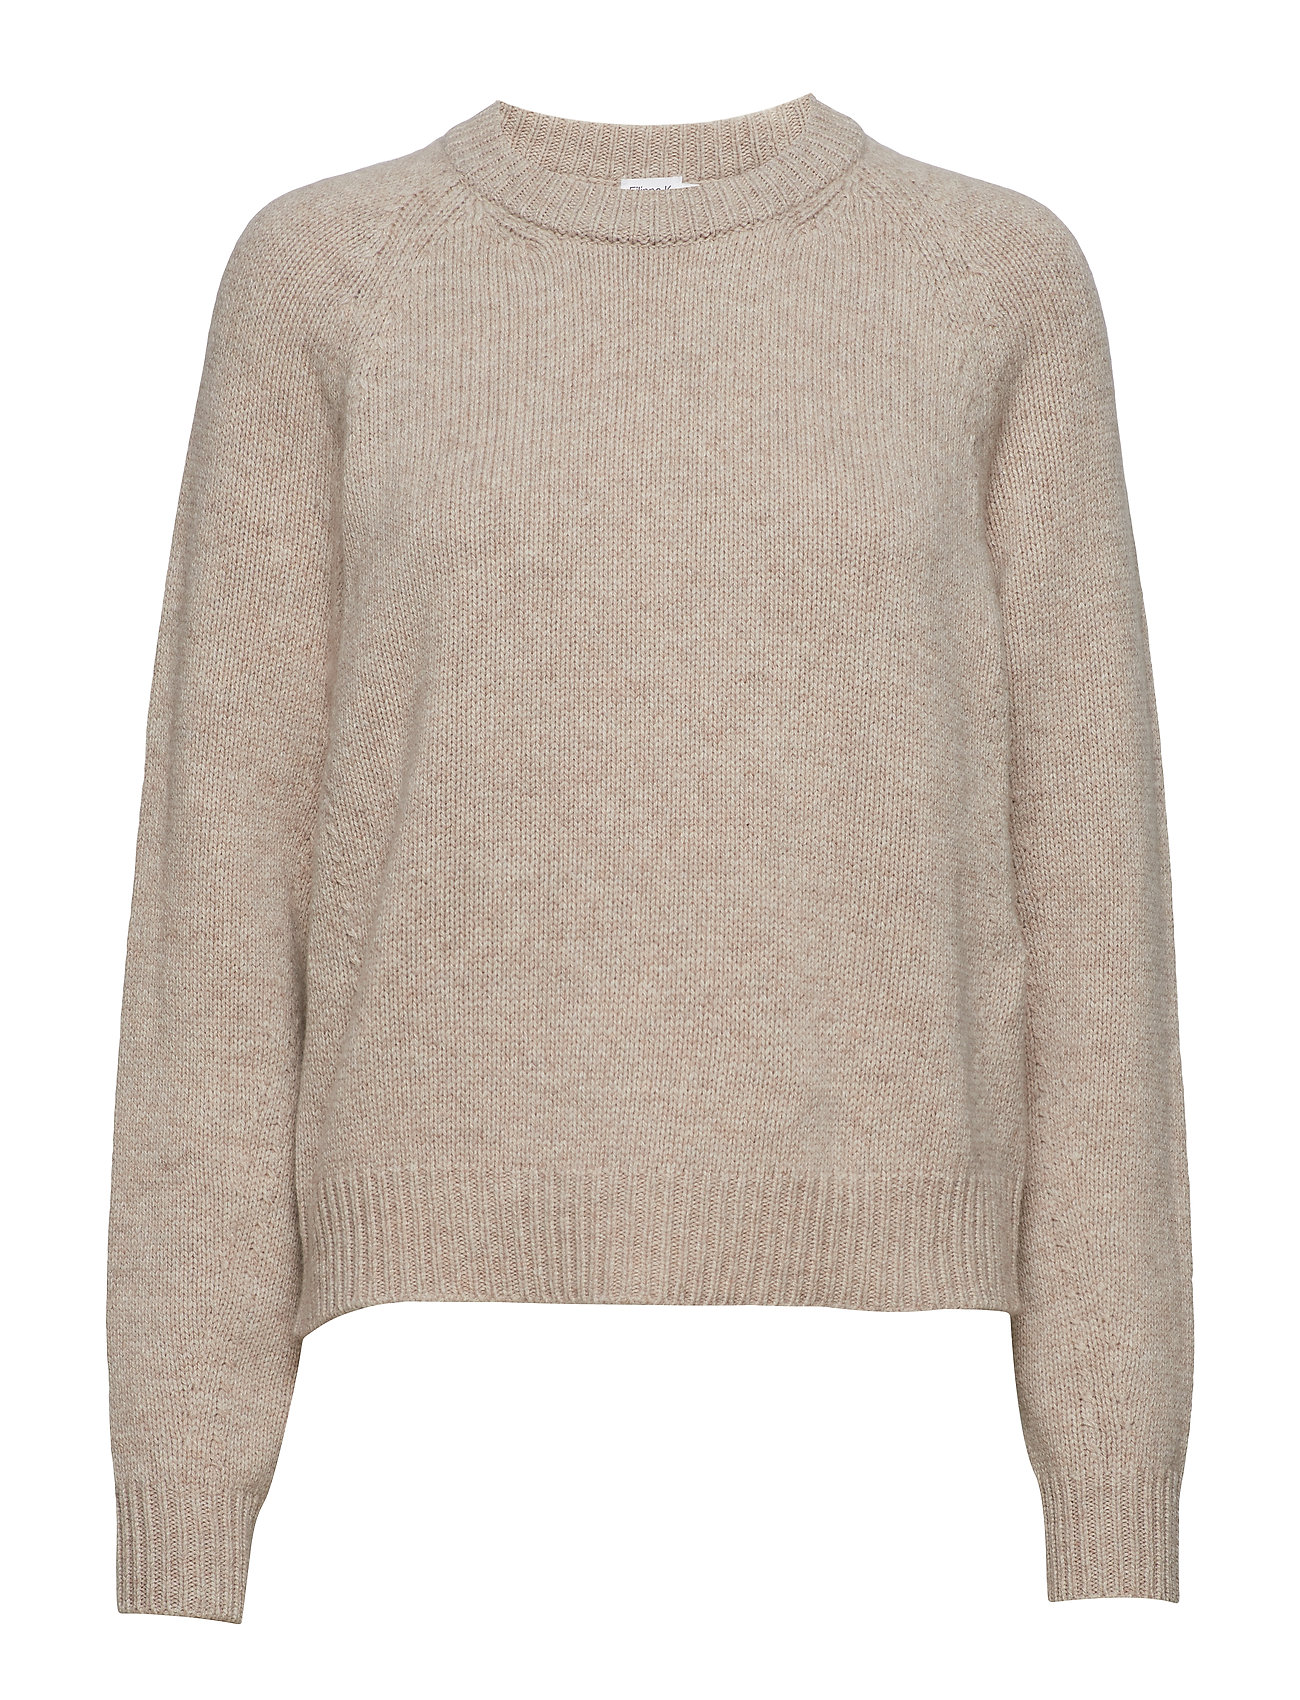 Filippa K Soft R-Neck Sweater - BEIGE MELA